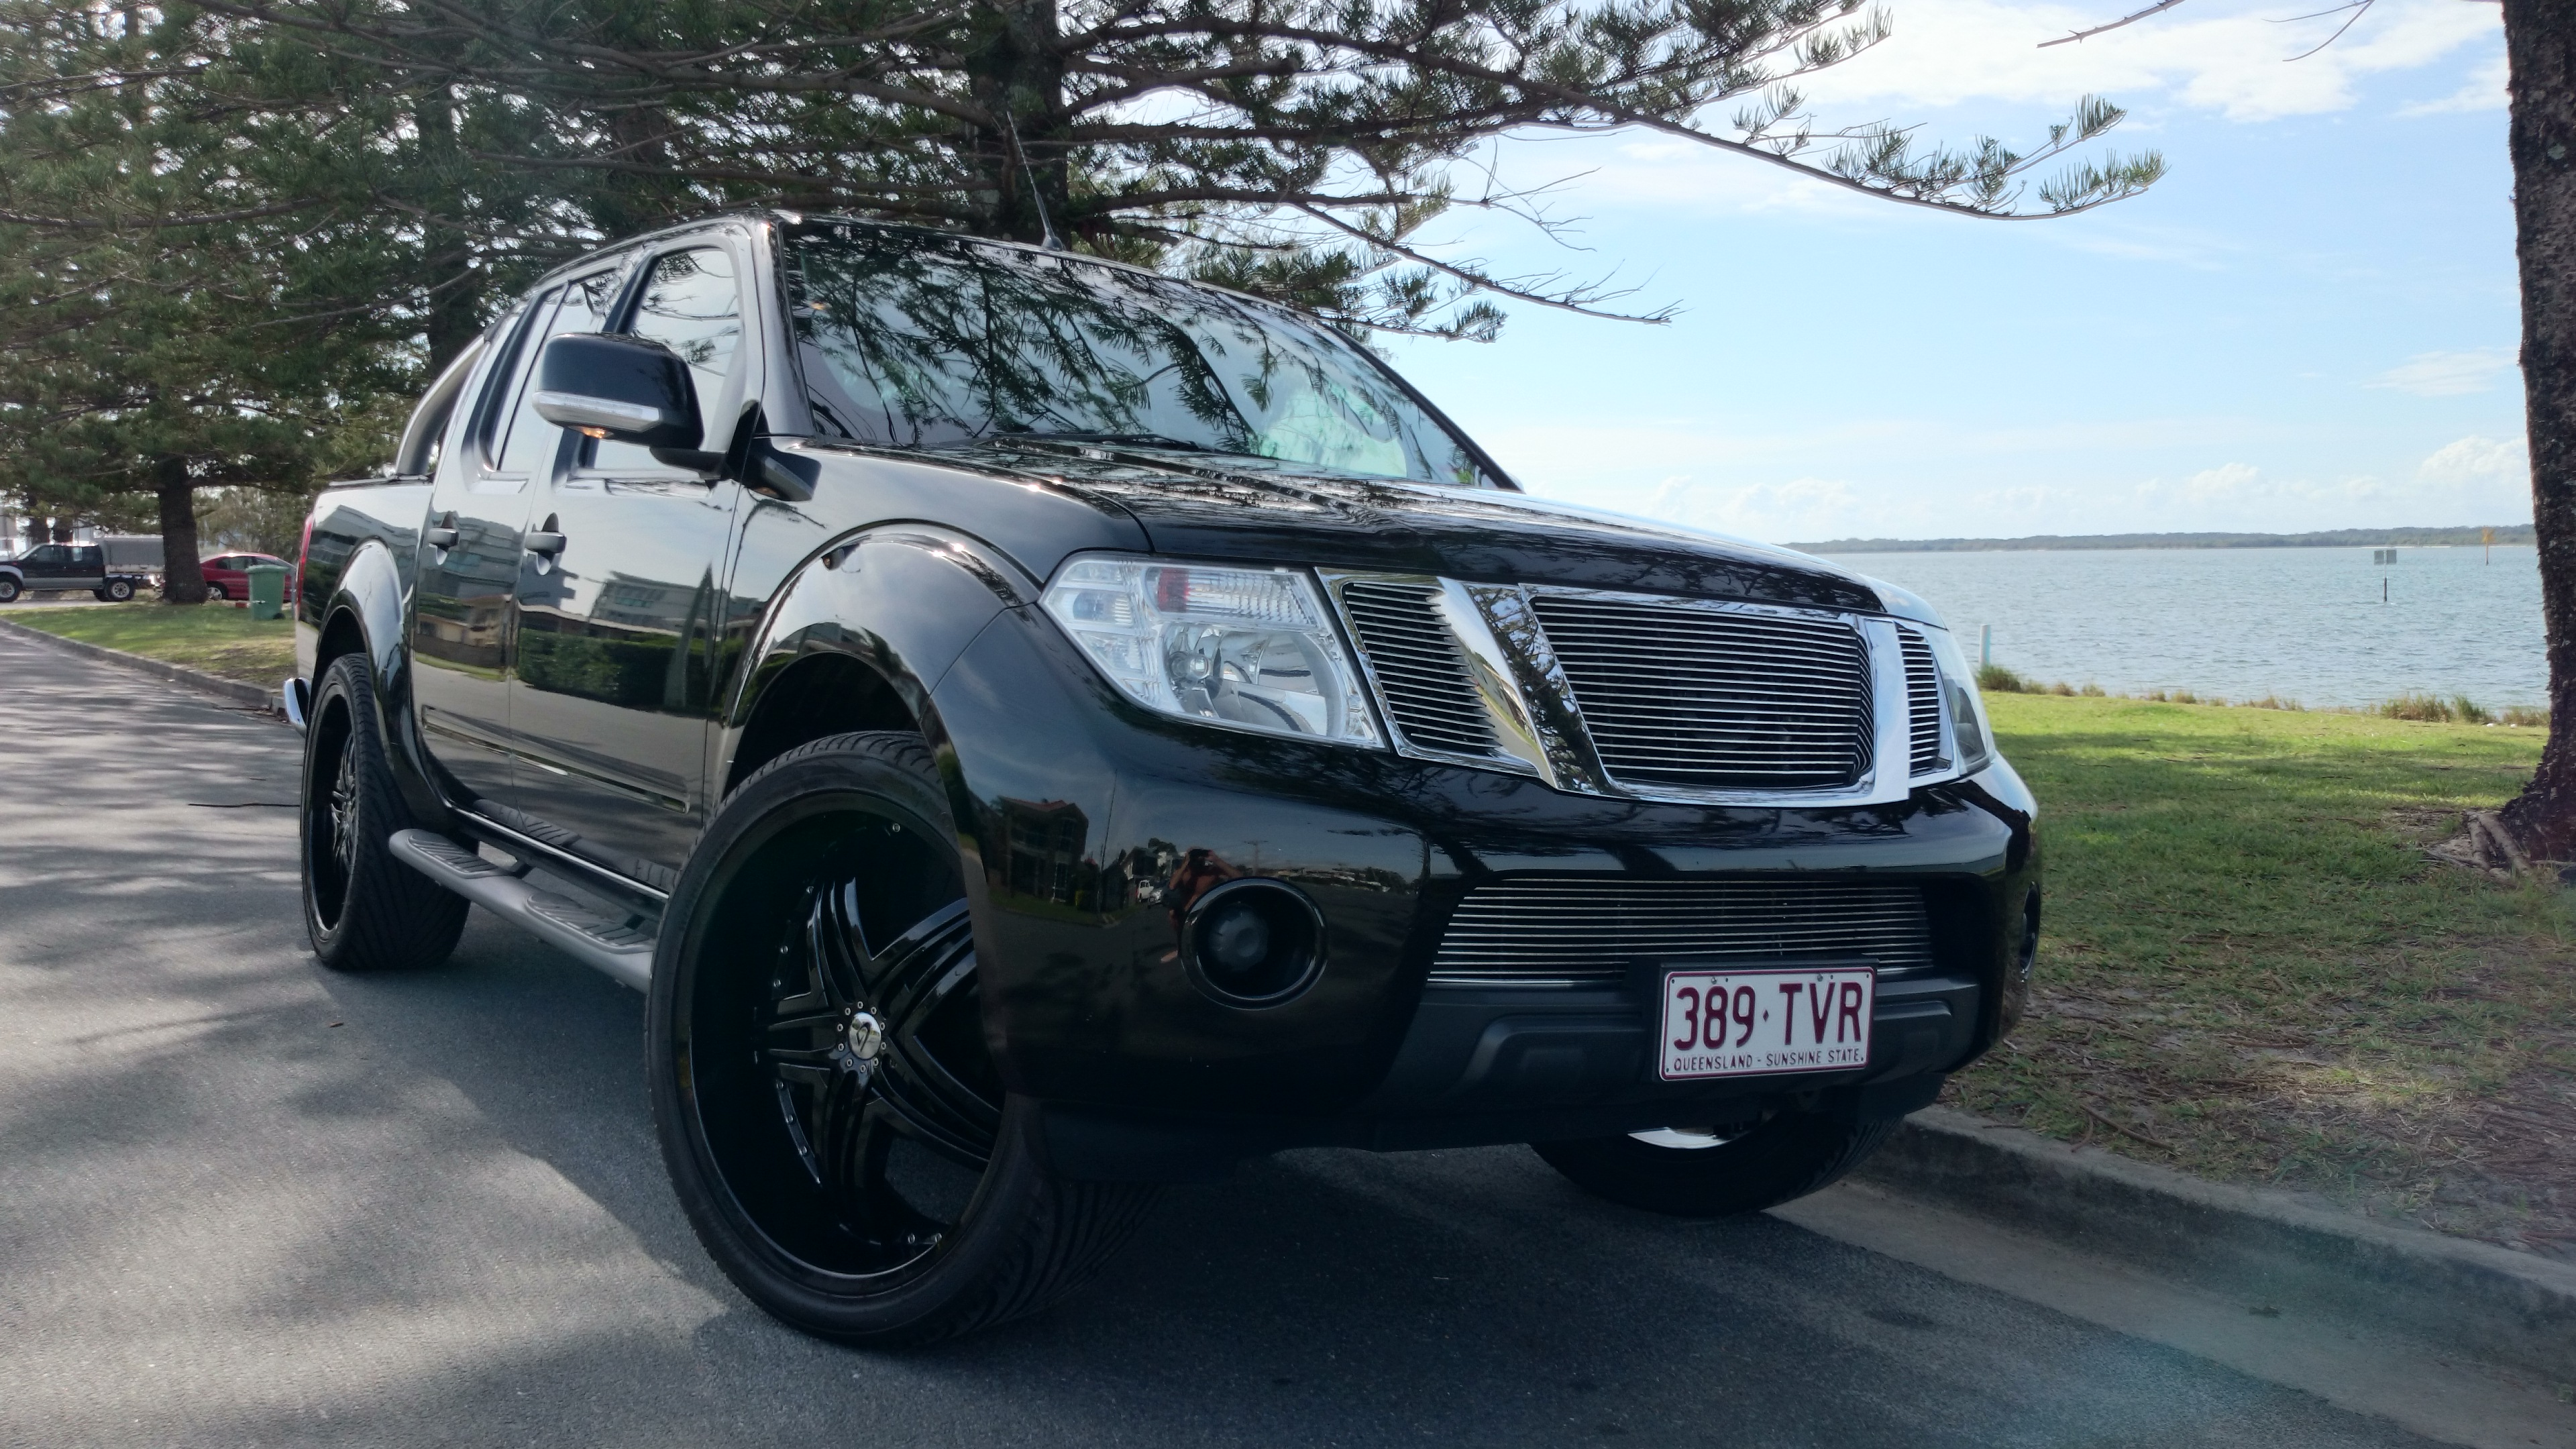 2012 nissan navara st 4x4 d40 my12 car sales qld gold coast 2459475. Black Bedroom Furniture Sets. Home Design Ideas